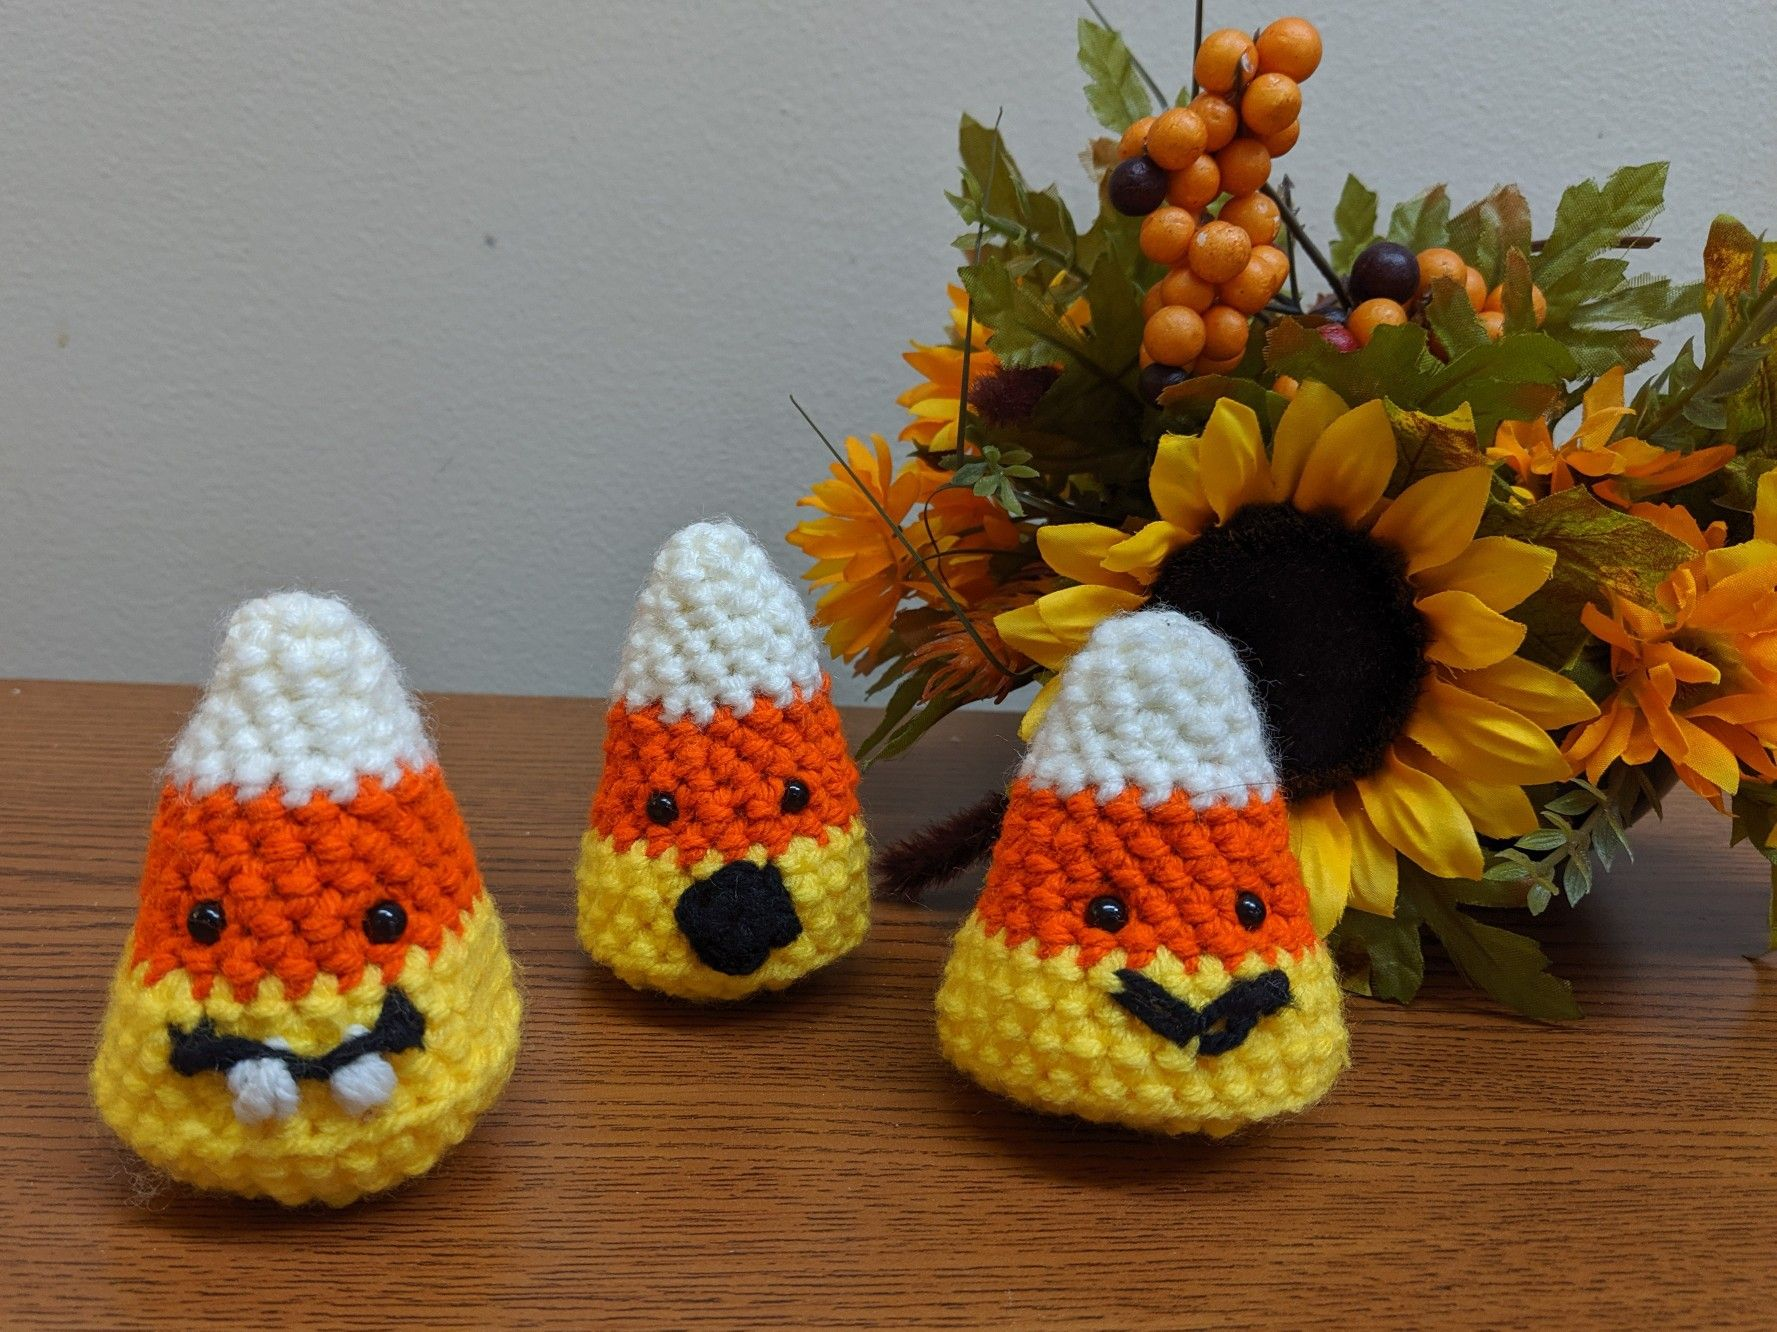 Handmade Crochet Candy Corn Decor